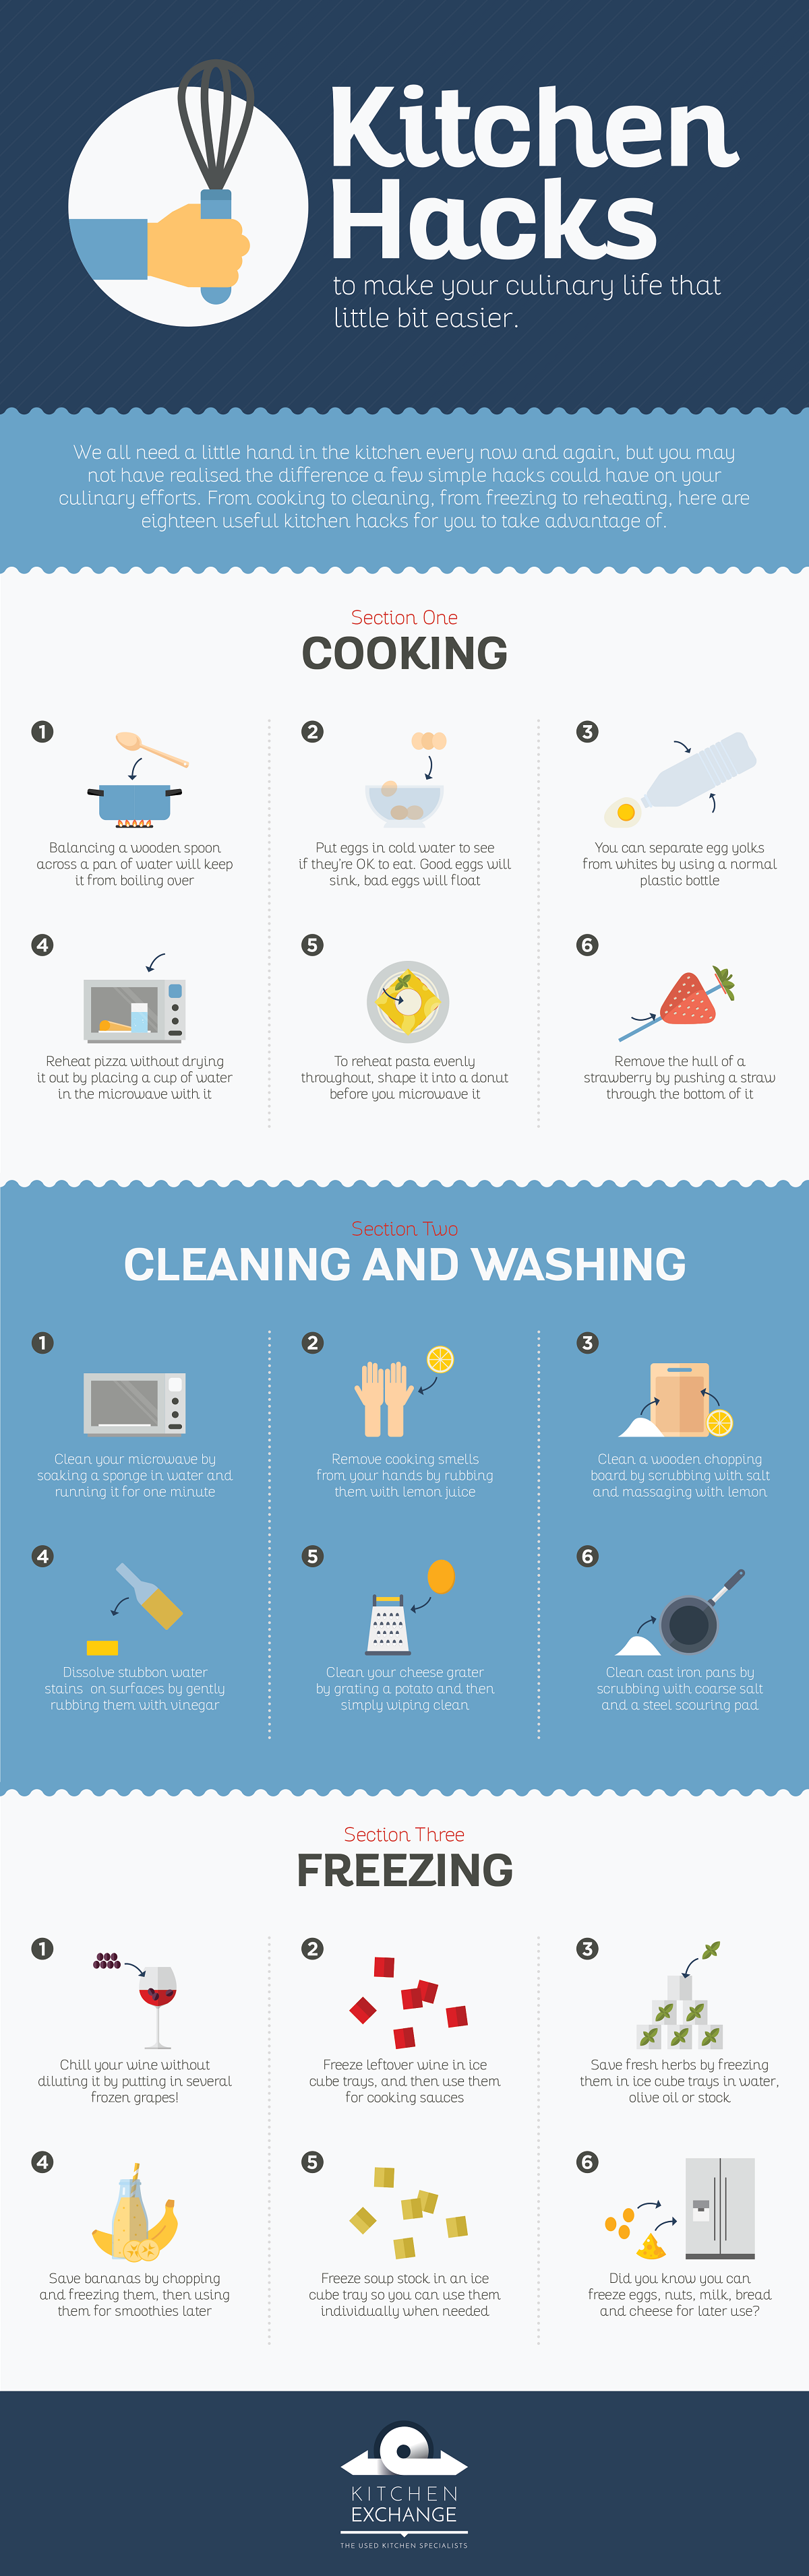 Best Kitchen Hacks To Make Your Life Easier #infographic